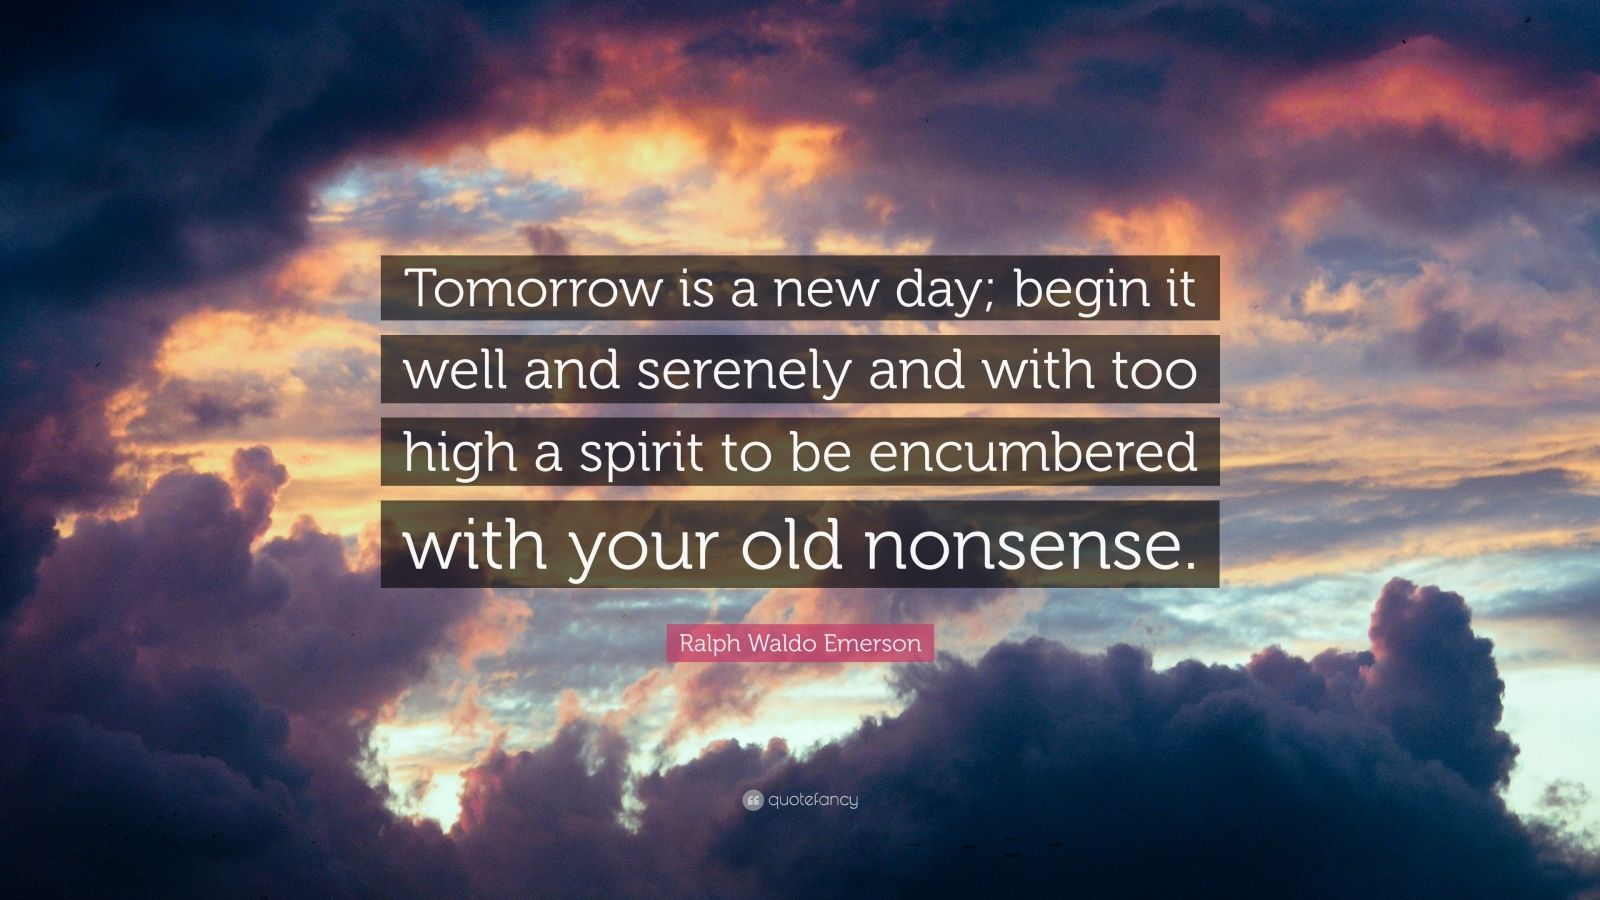 """Ralph Waldo Emerson Quote: """"Tomorrow is a new day; begin it well and serenely and with too high a spirit to be encumbered with your old nonsense."""""""